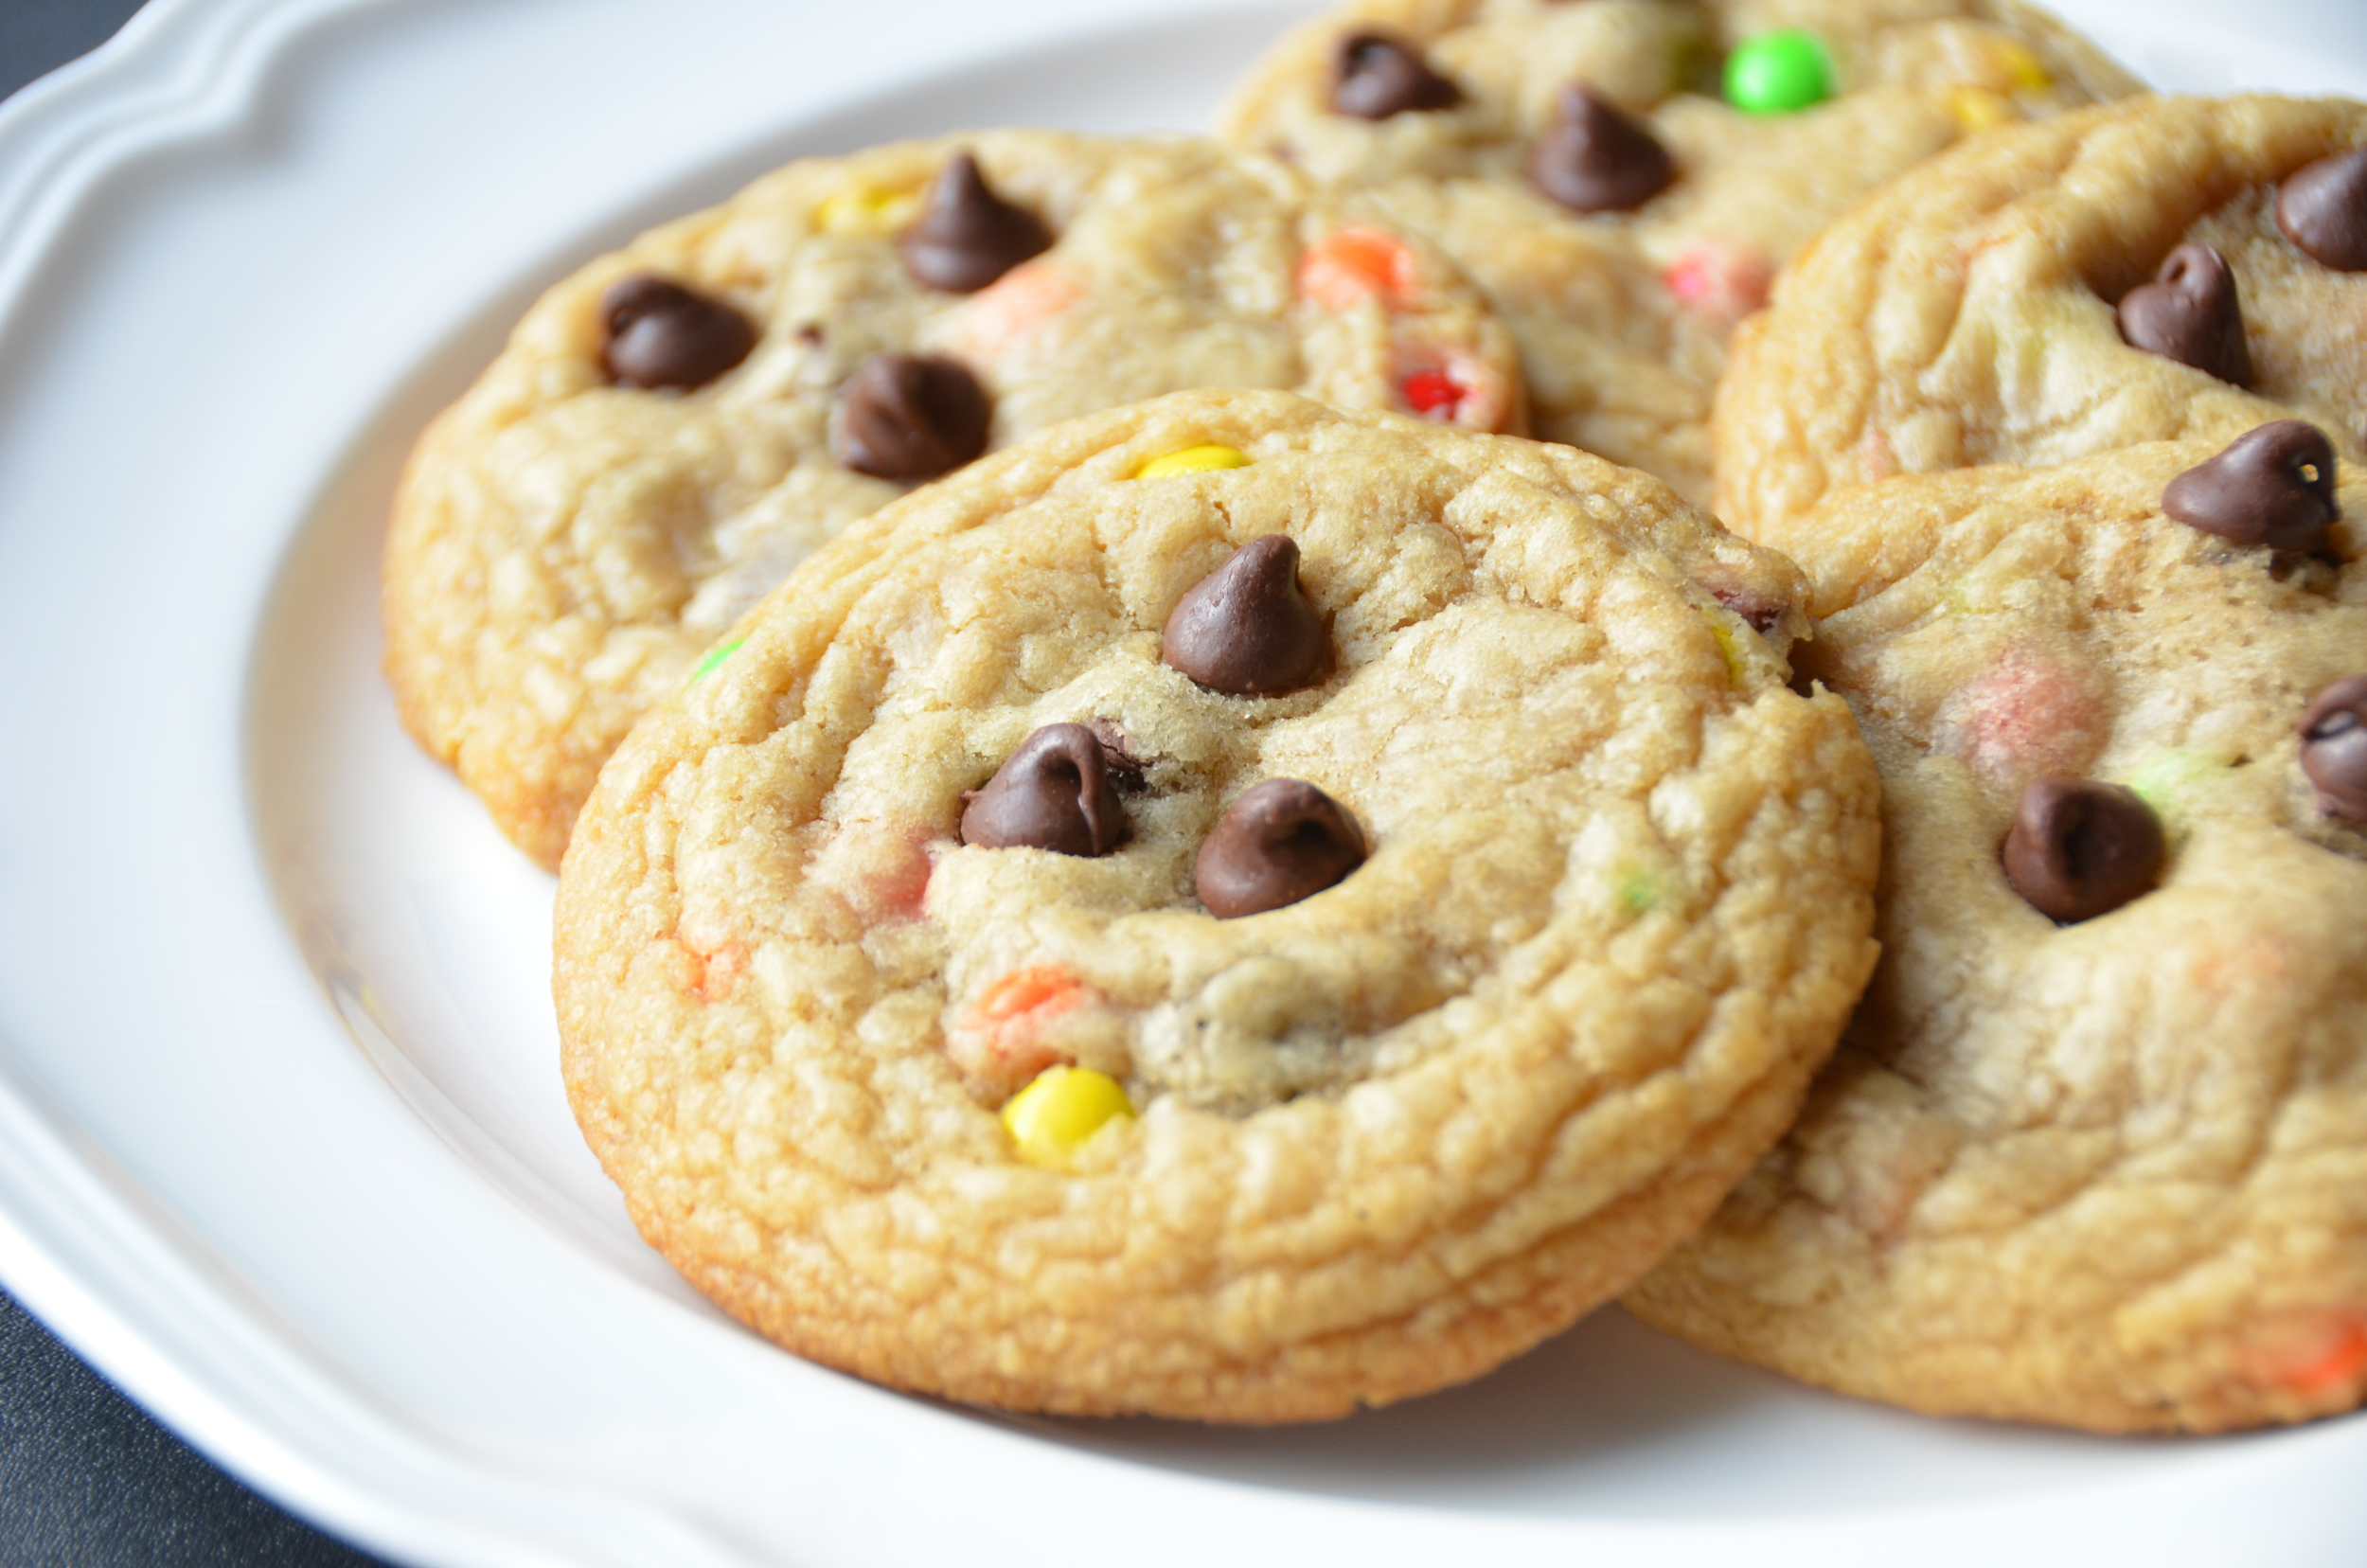 Soft and Chewy Chocolate Chip Cookies - ButterYum